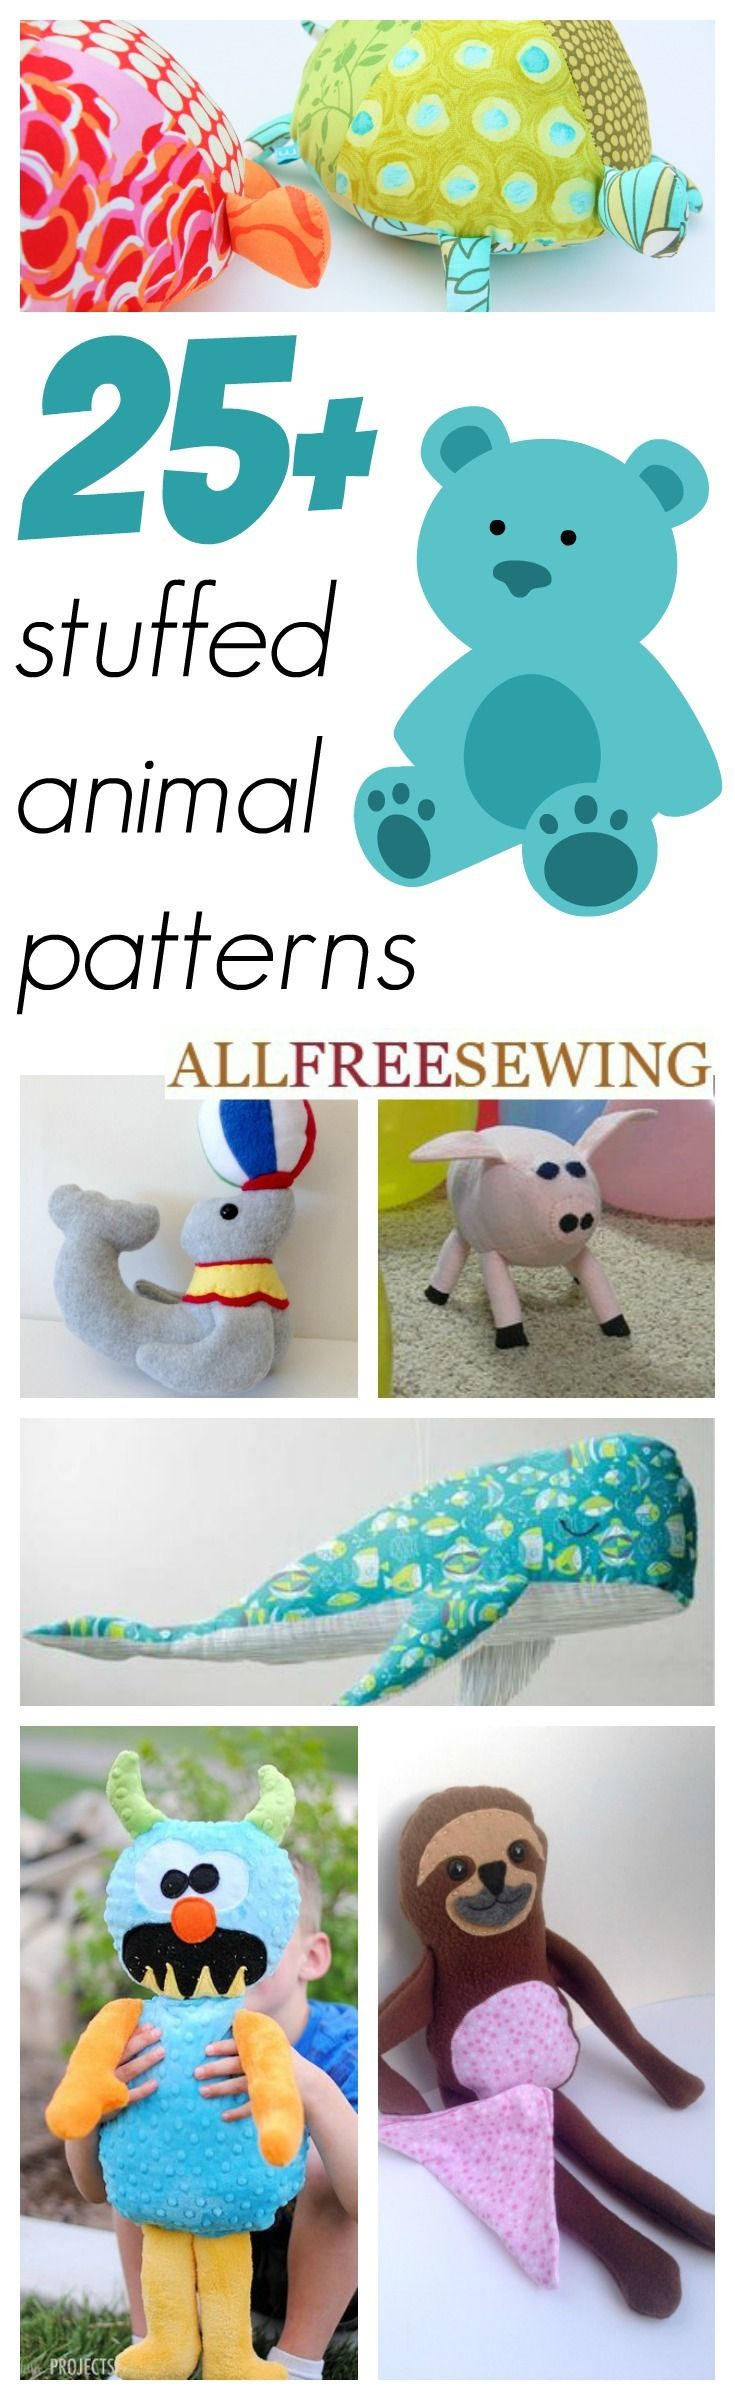 Stuffed animal pattern Mas de 25 patrones de animales de peluche   -   25+ Easy Stuffed Animal Patterns